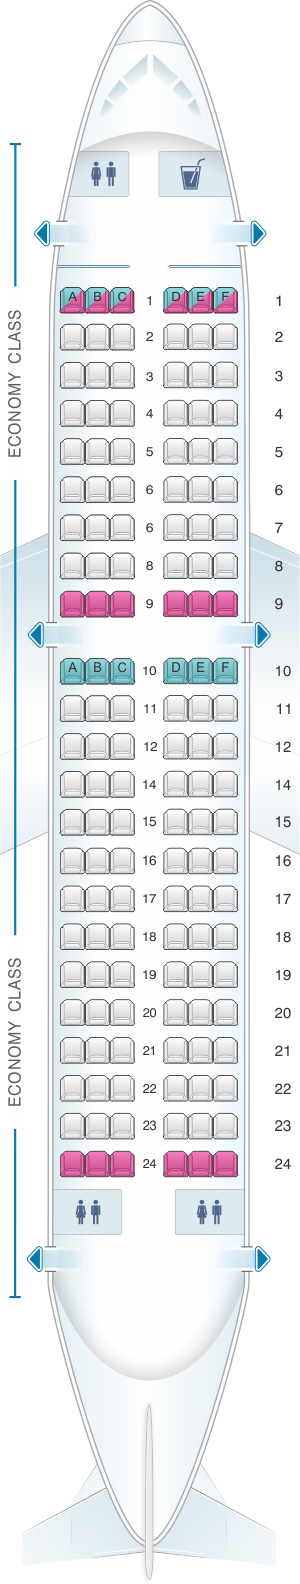 Seat map for Air Moldova Airbus A319